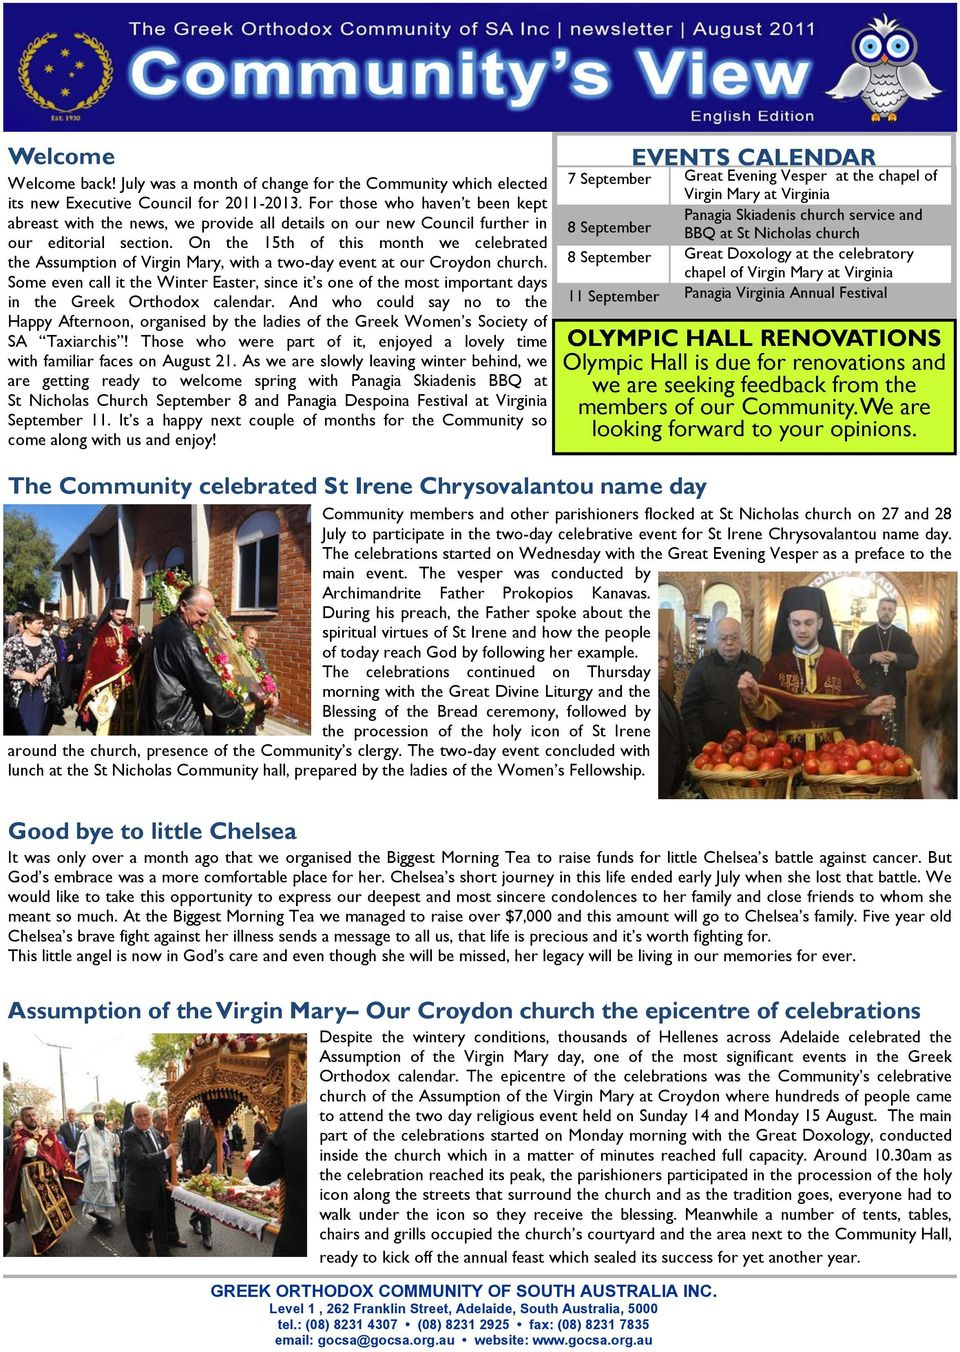 On the 15th of this month we celebrated the Assumption of Virgin Mary, with a two-day event at our Croydon church.